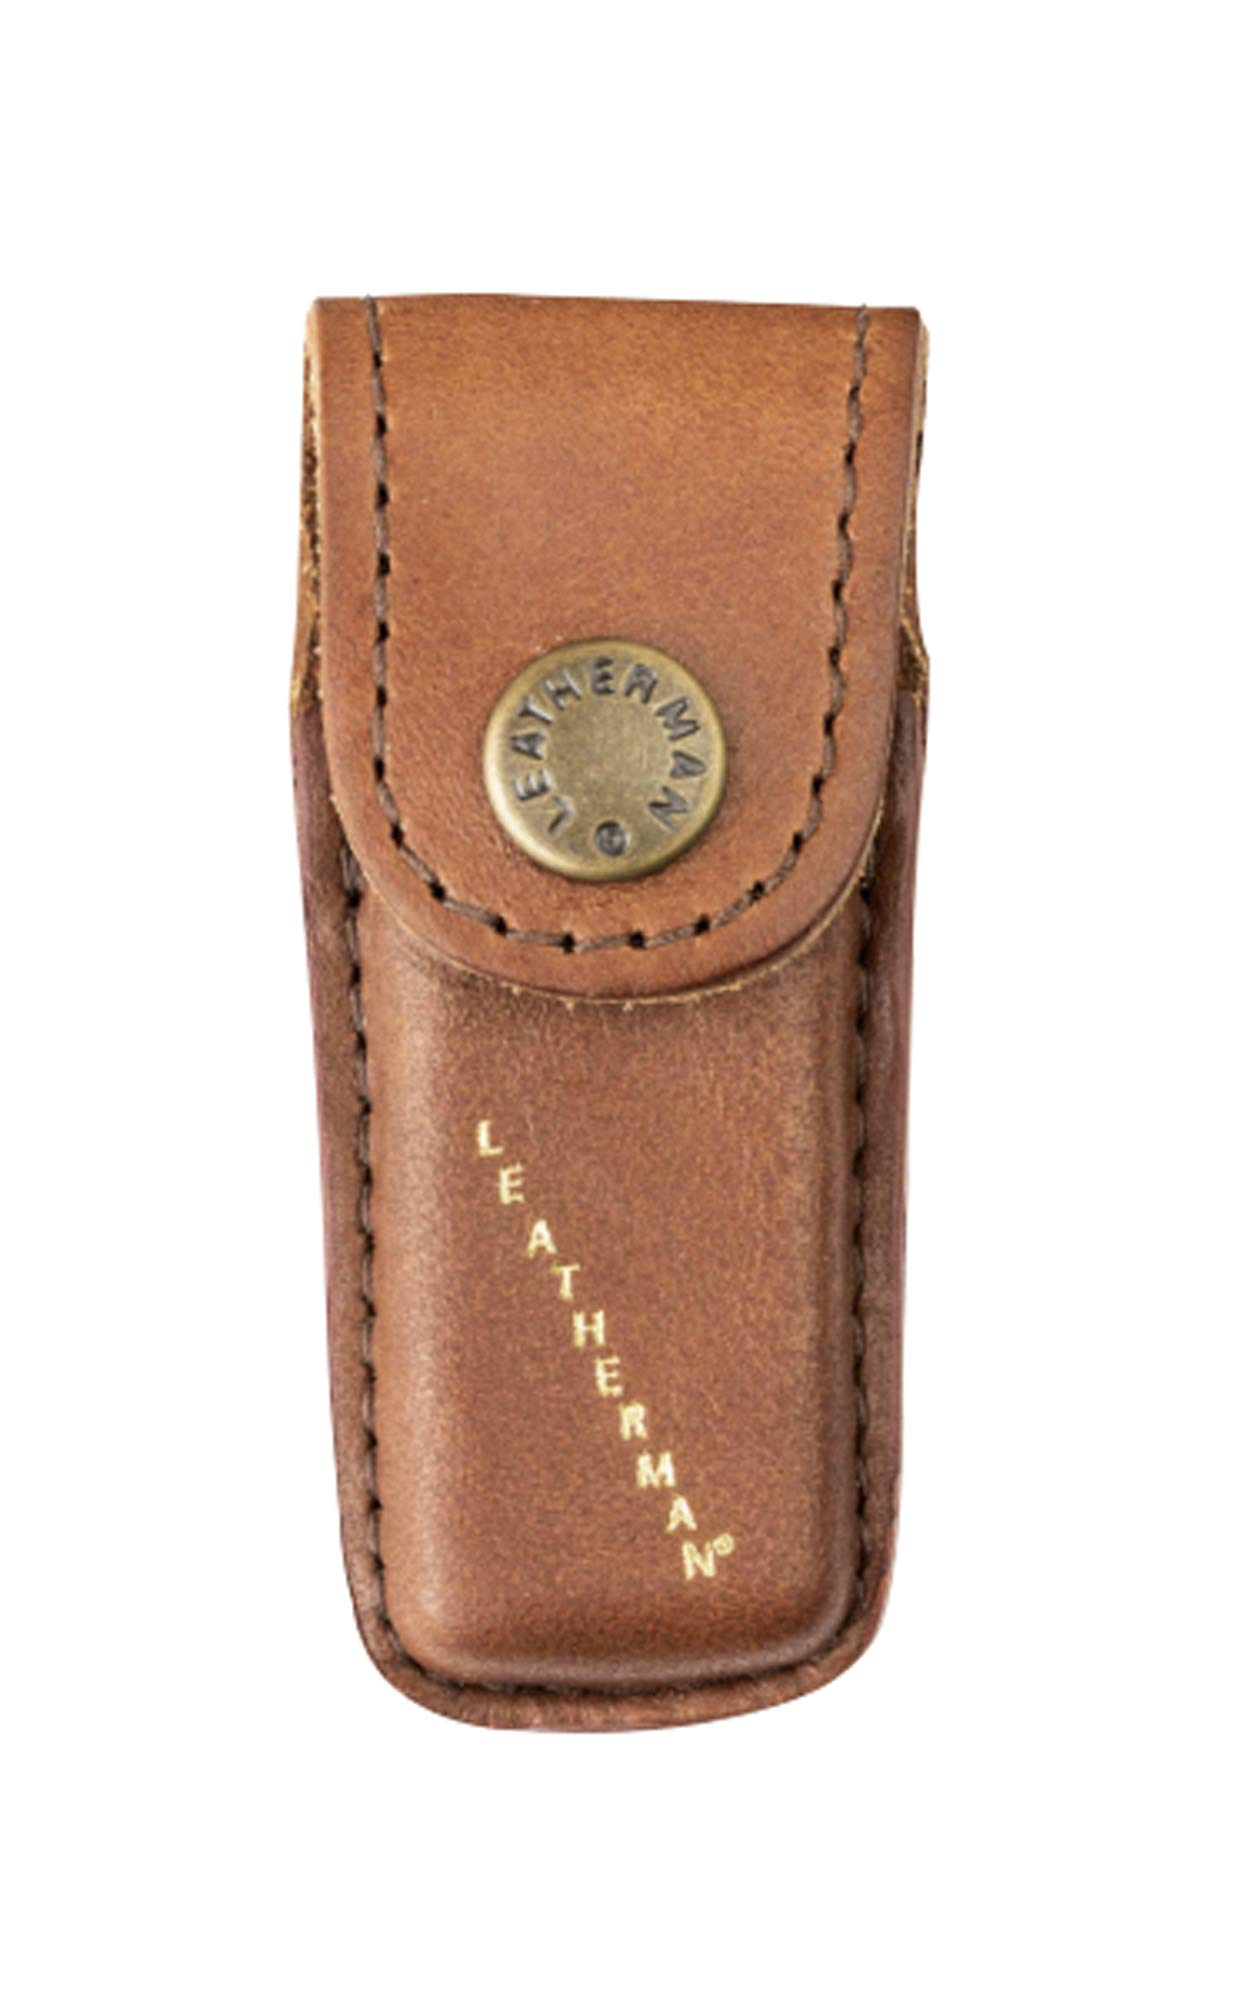 LEATHERMAN - Heritage Leather Snap Sheath for Multitools, Extra Small (Fits Micra)